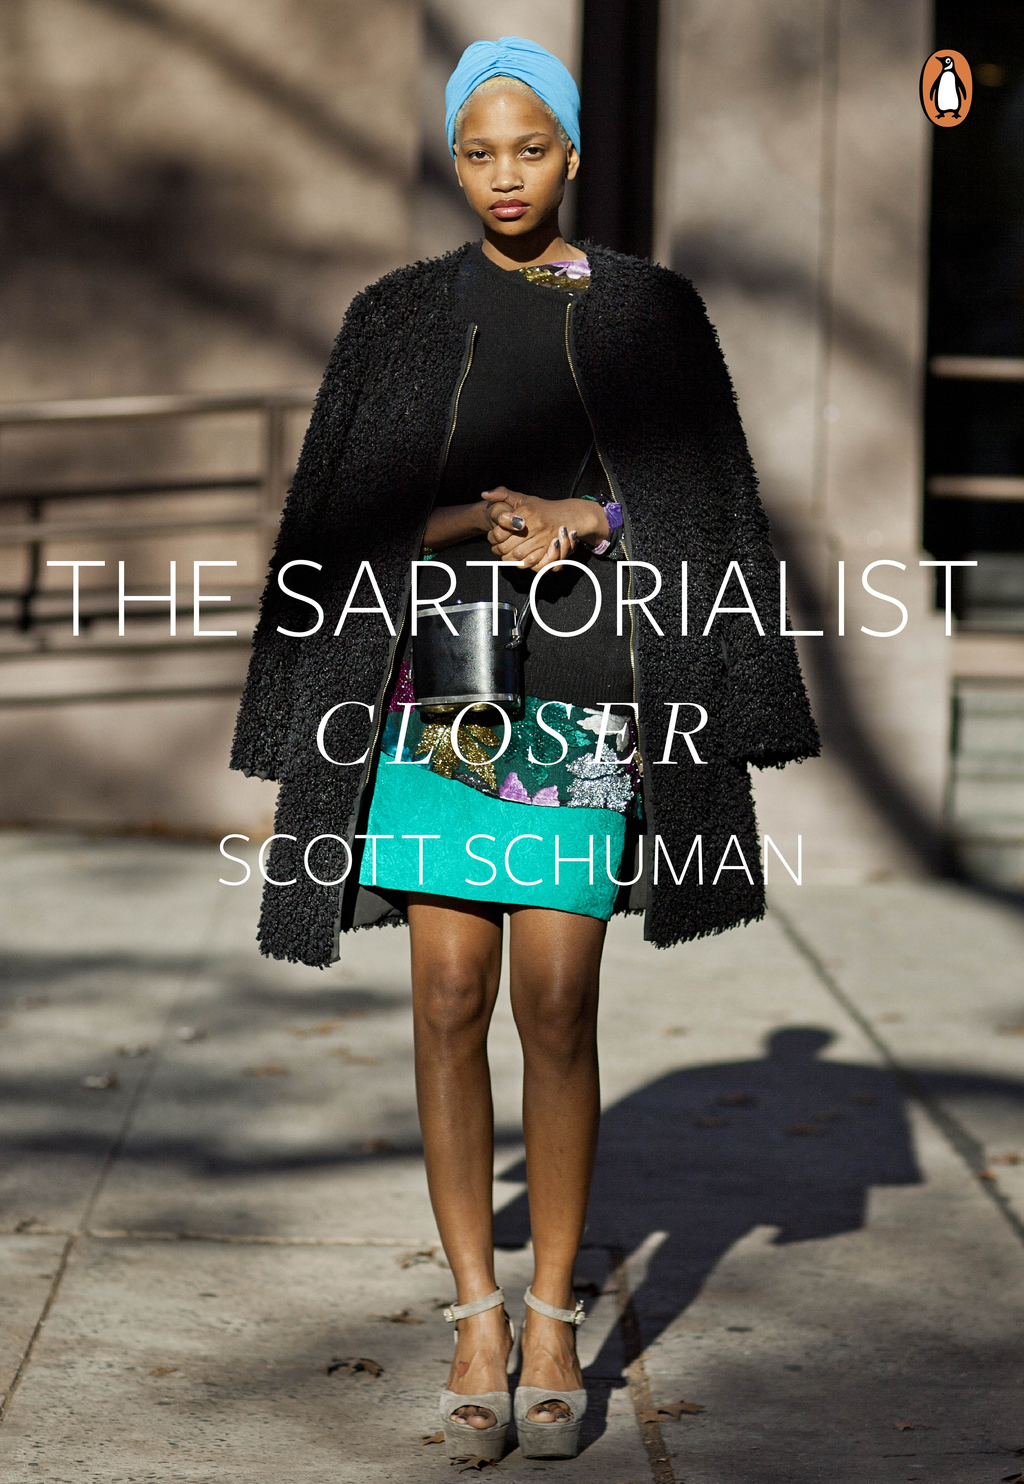 The Sartorialist: Closer (The Sartorialist Volume 2)